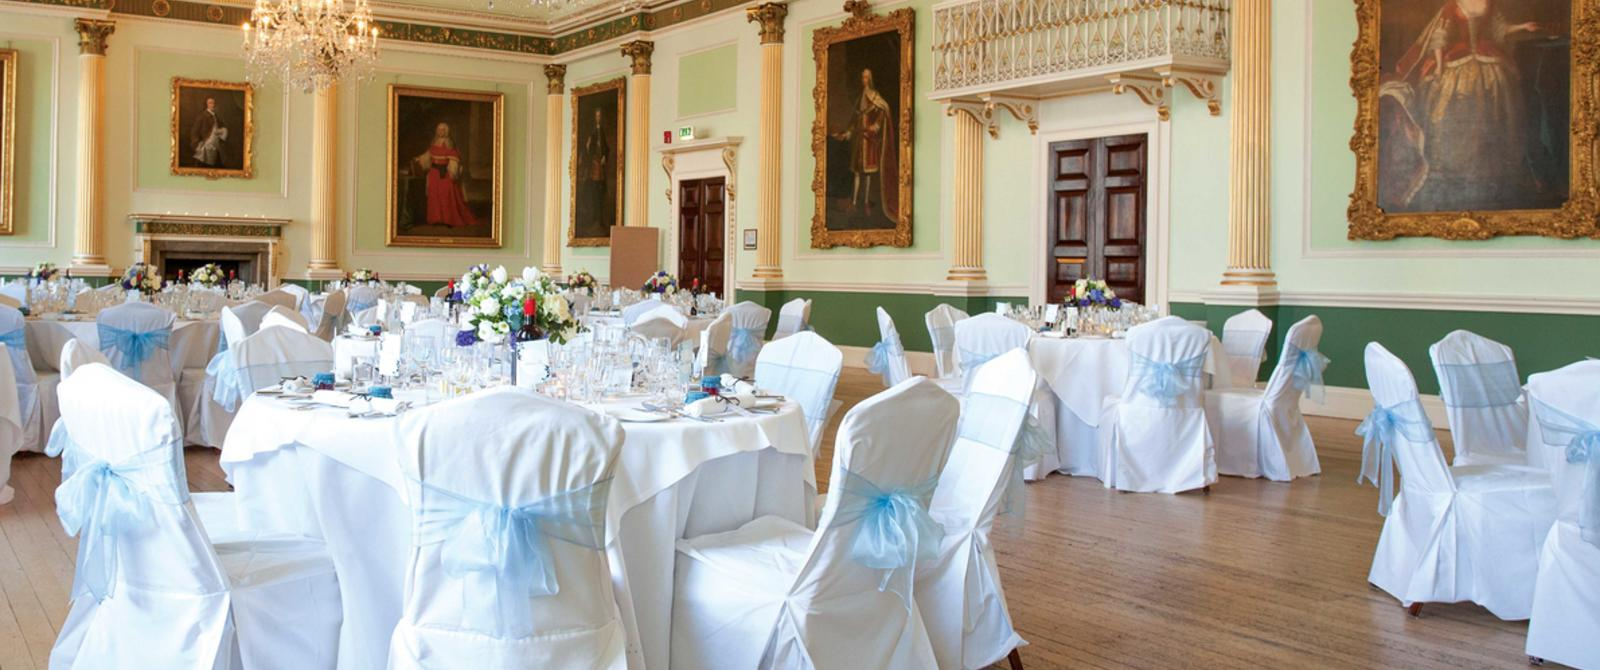 Image: Banqueting Room